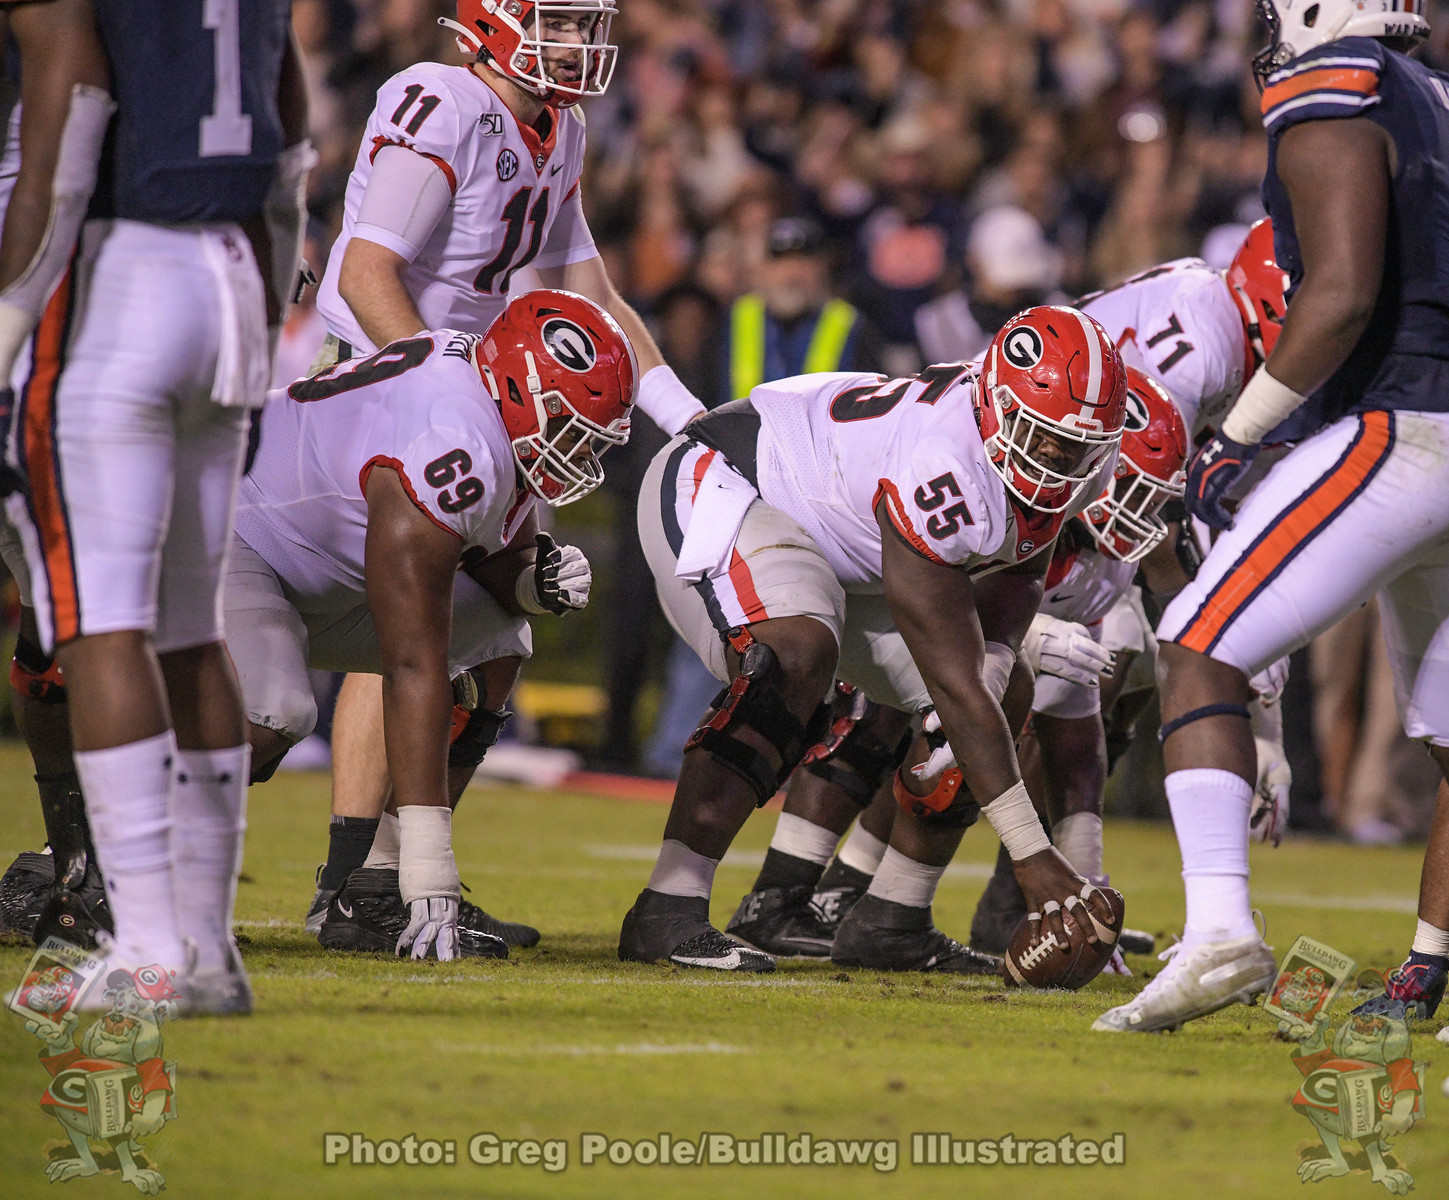 Jamaree Salyer (69) and Trey Hill (55) - Georgia vs. Auburn 2019 - Third Quarter - November 16, 2019